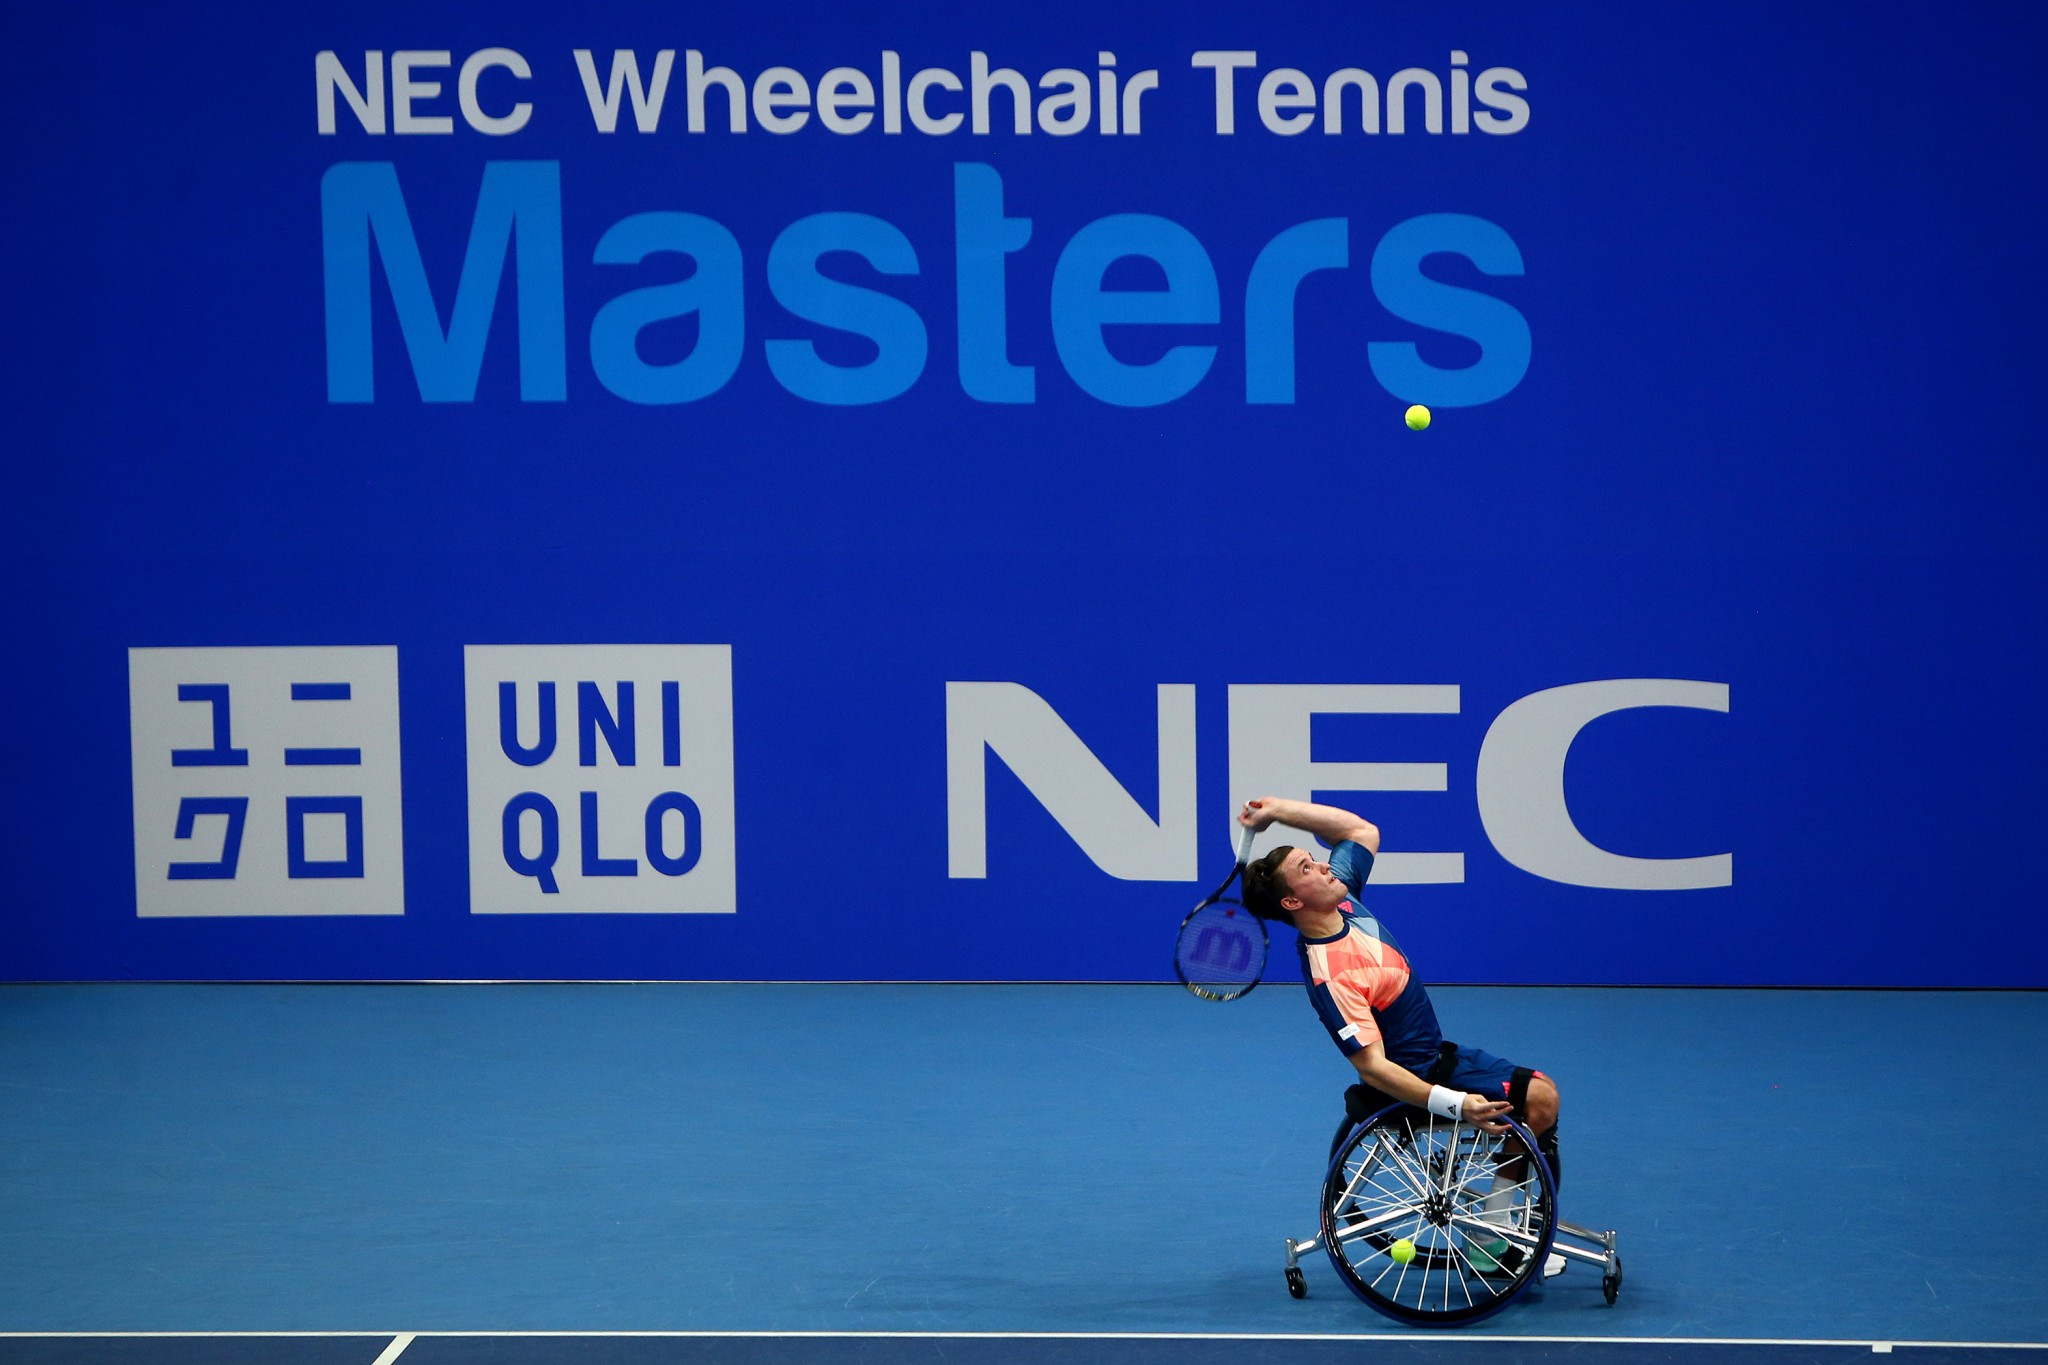 Loughborough University to host Wheelchair Tennis Masters